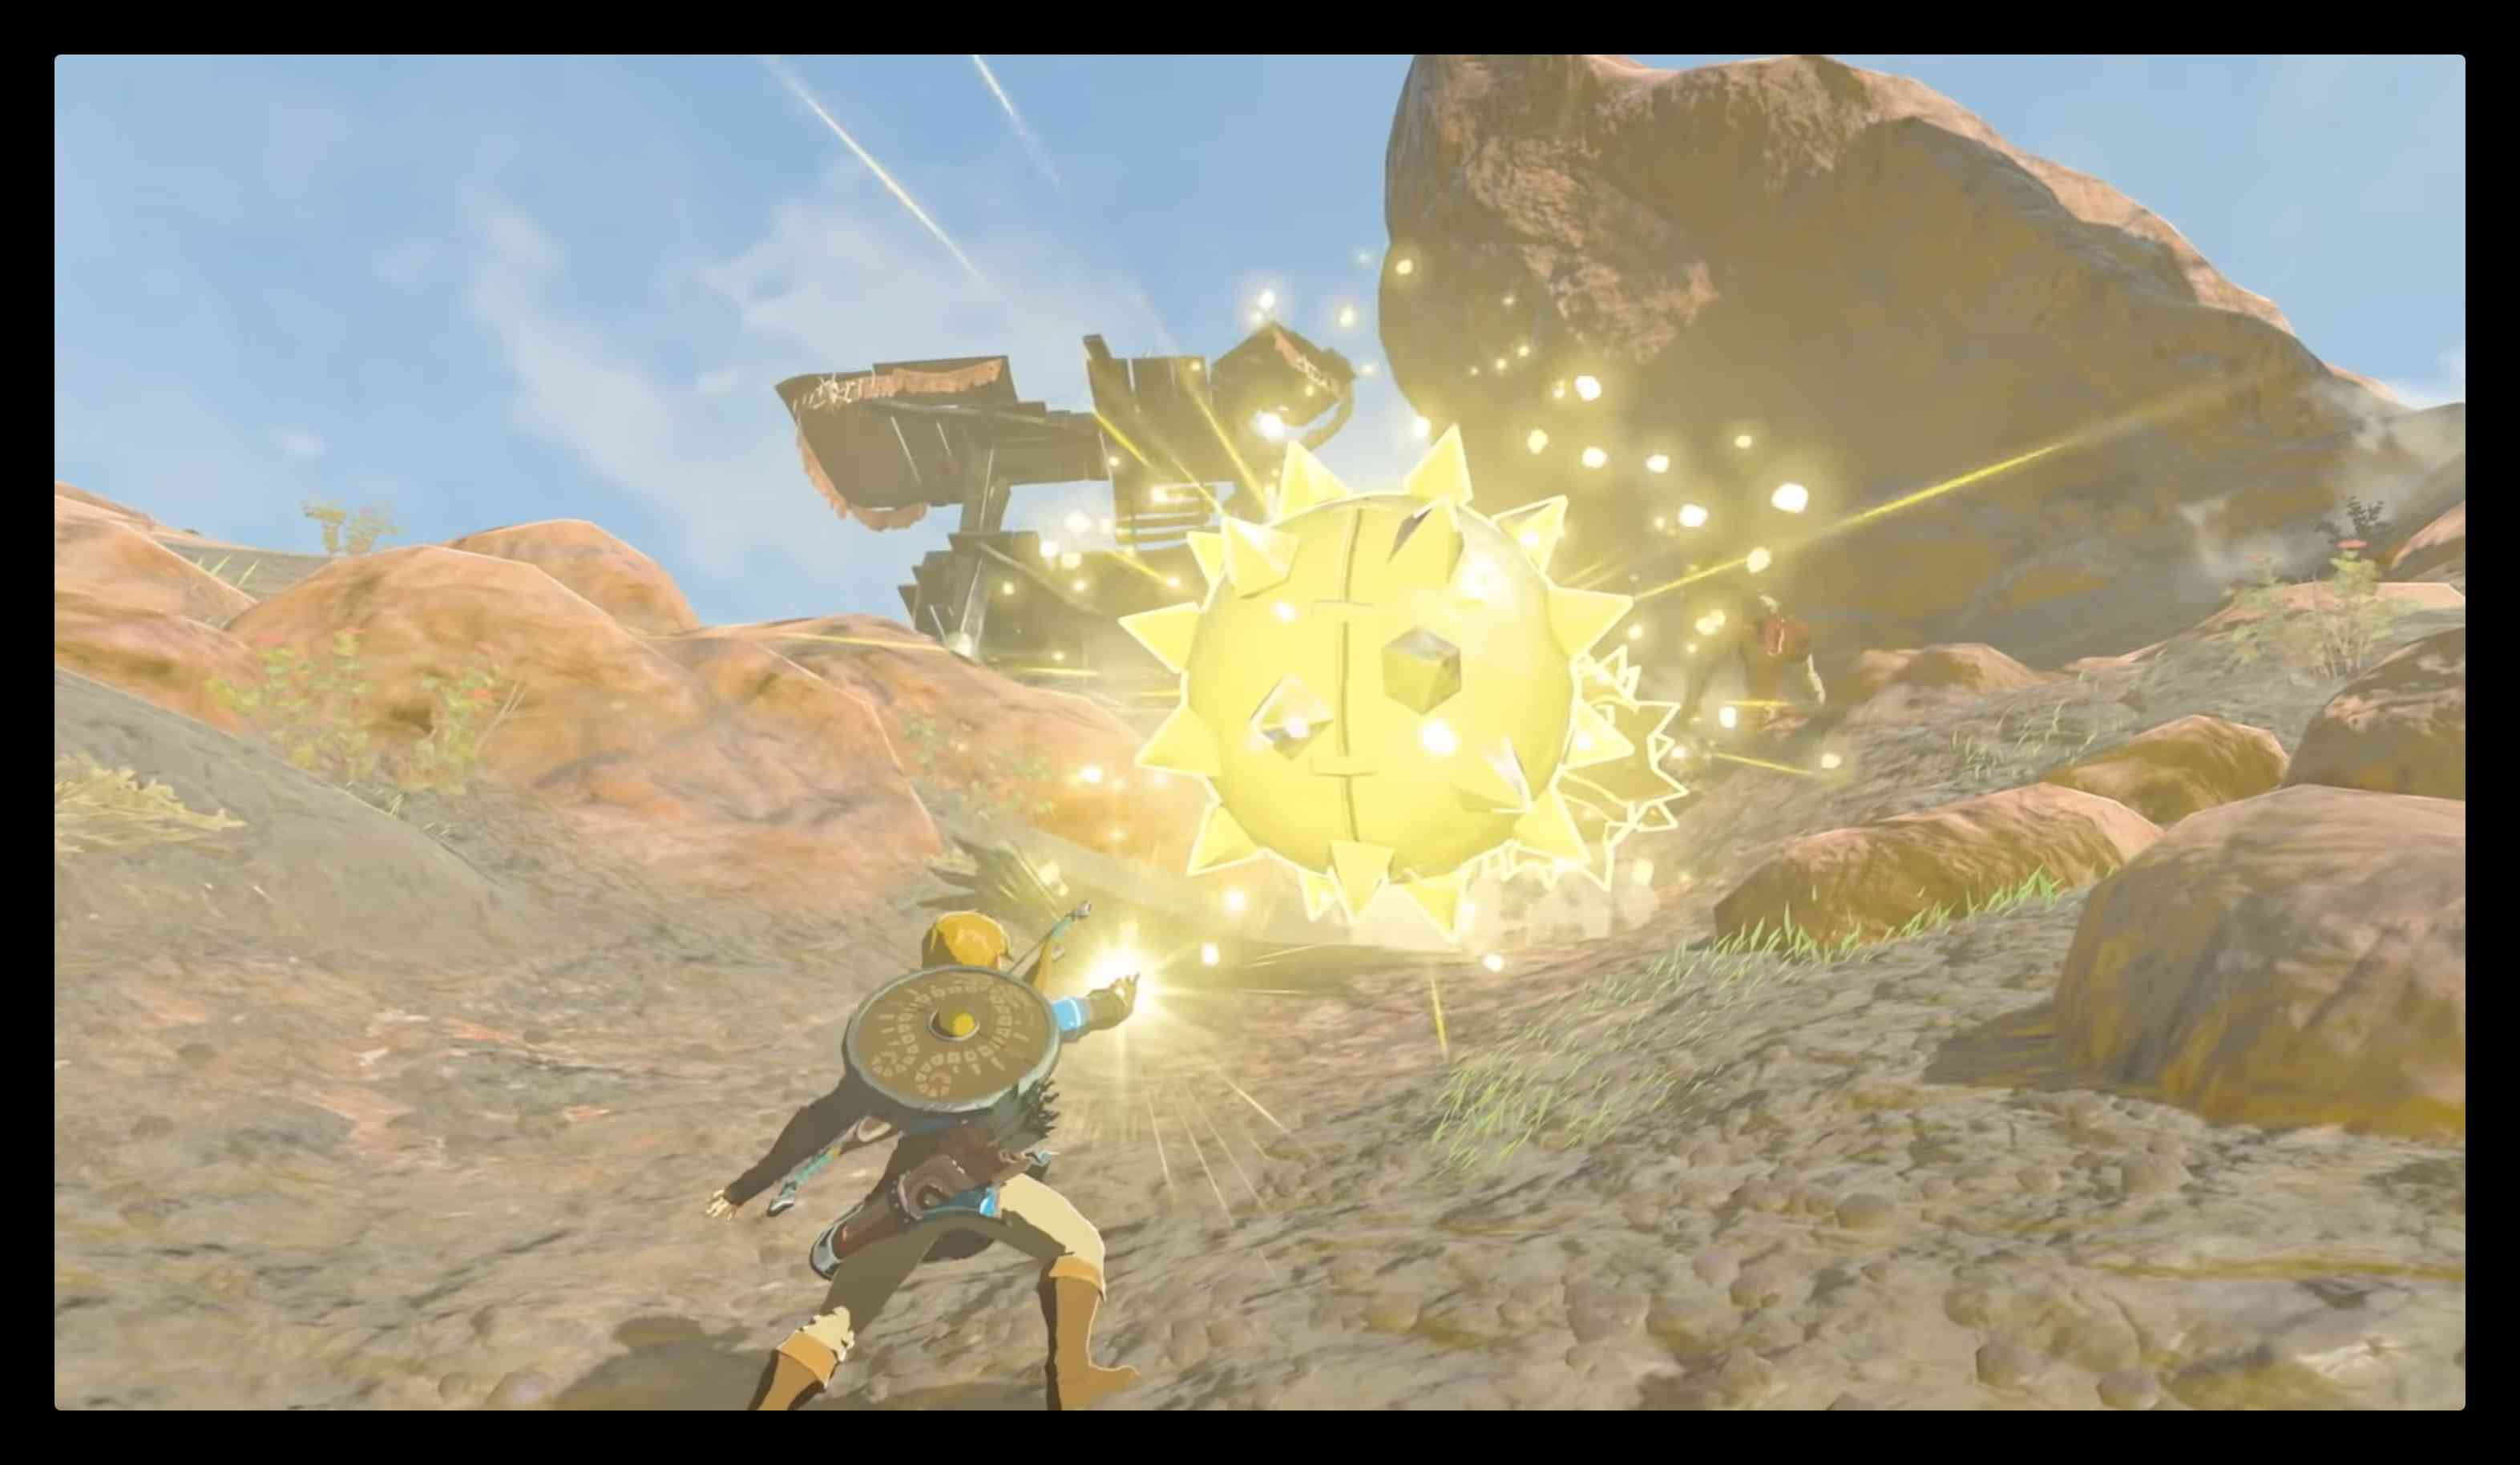 Link stopping a spiked ball before it hits him